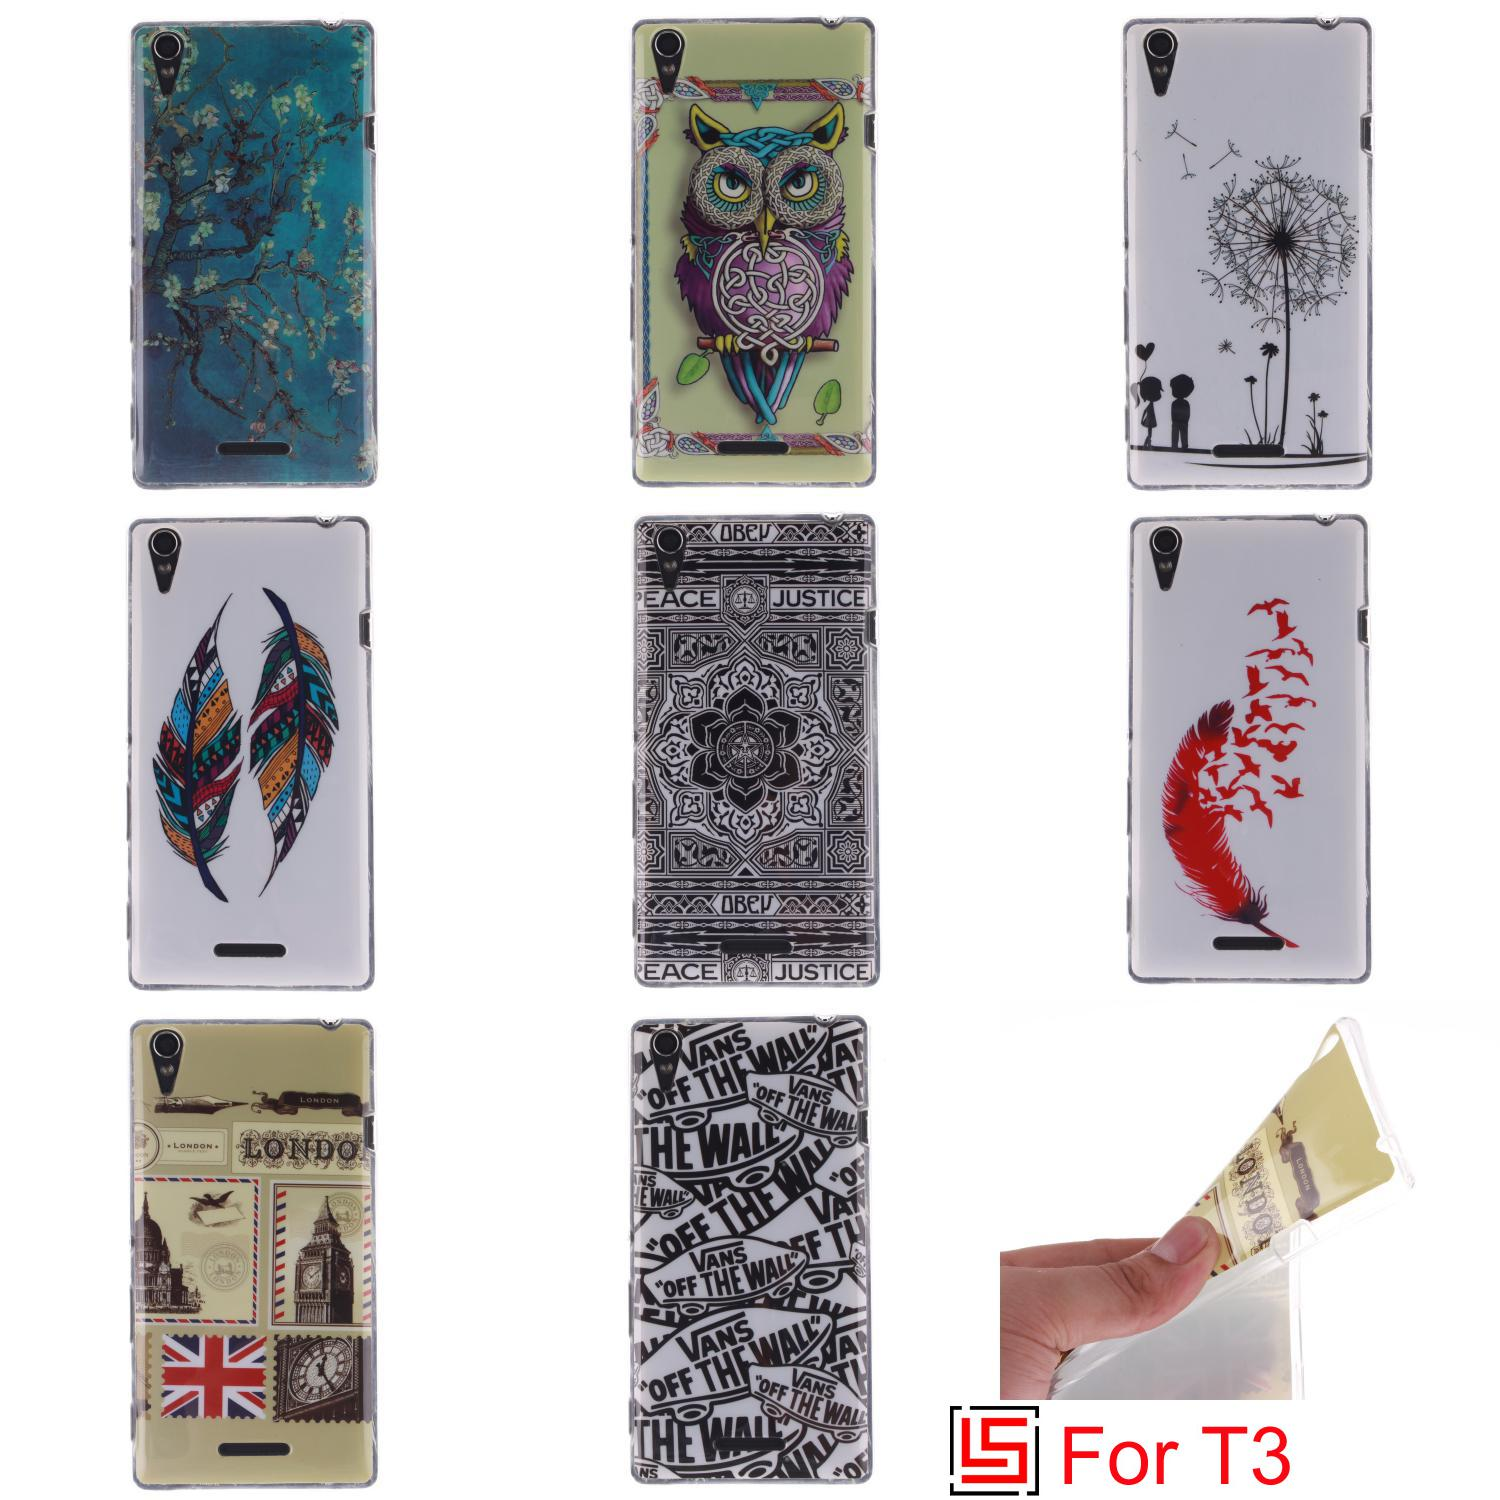 New Ultra Thin TPU Silicone Soft Phone Cell Case capinha capa shell Cover Bag For Sony Xperia Experia Xperi T3 Lion Feather(China (Mainland))